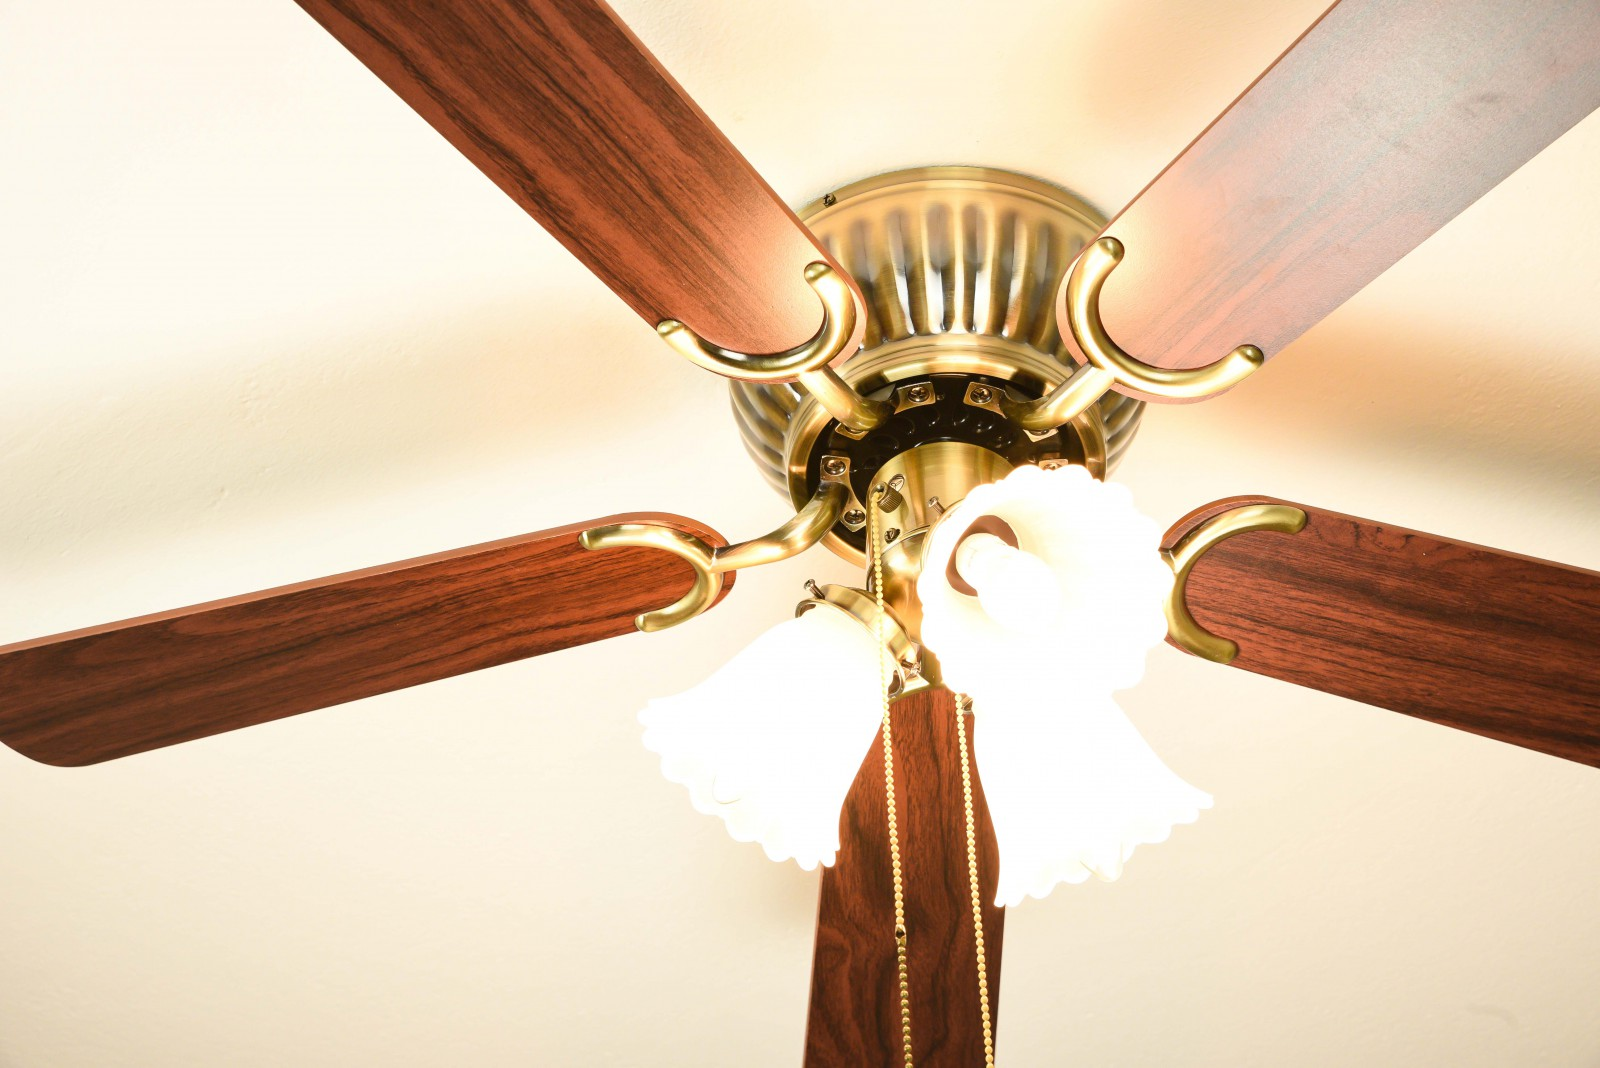 Mount Fan To The Ceiling Slim Flat Ceiling Fans Ceres Webshop